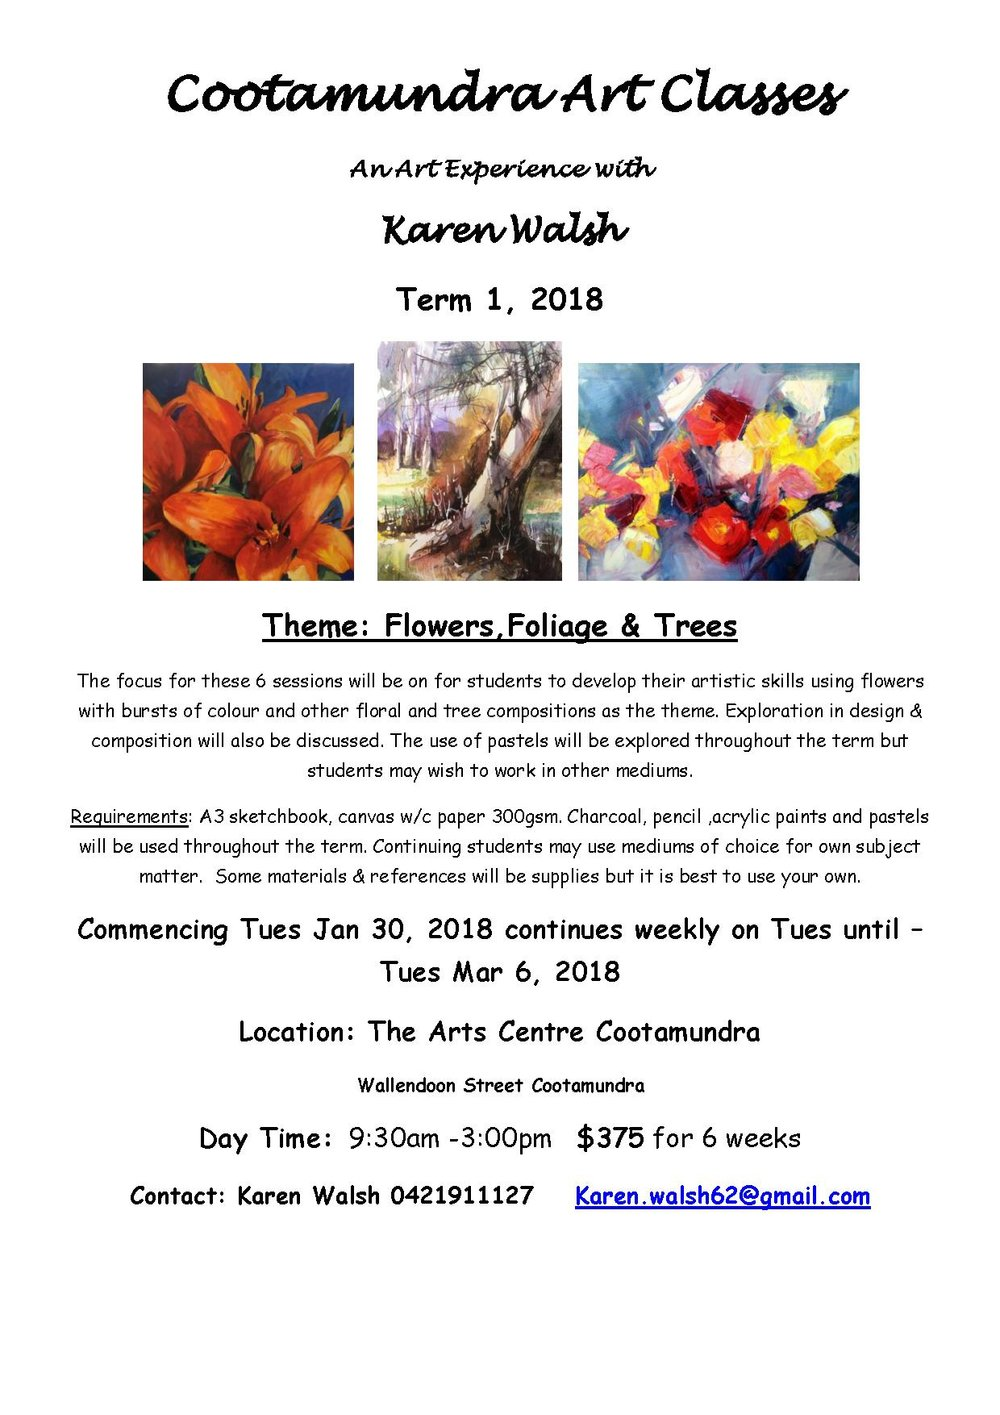 Art Experience  flyer Cootamundra Term 1 2018  Flowers and Folage.jpg